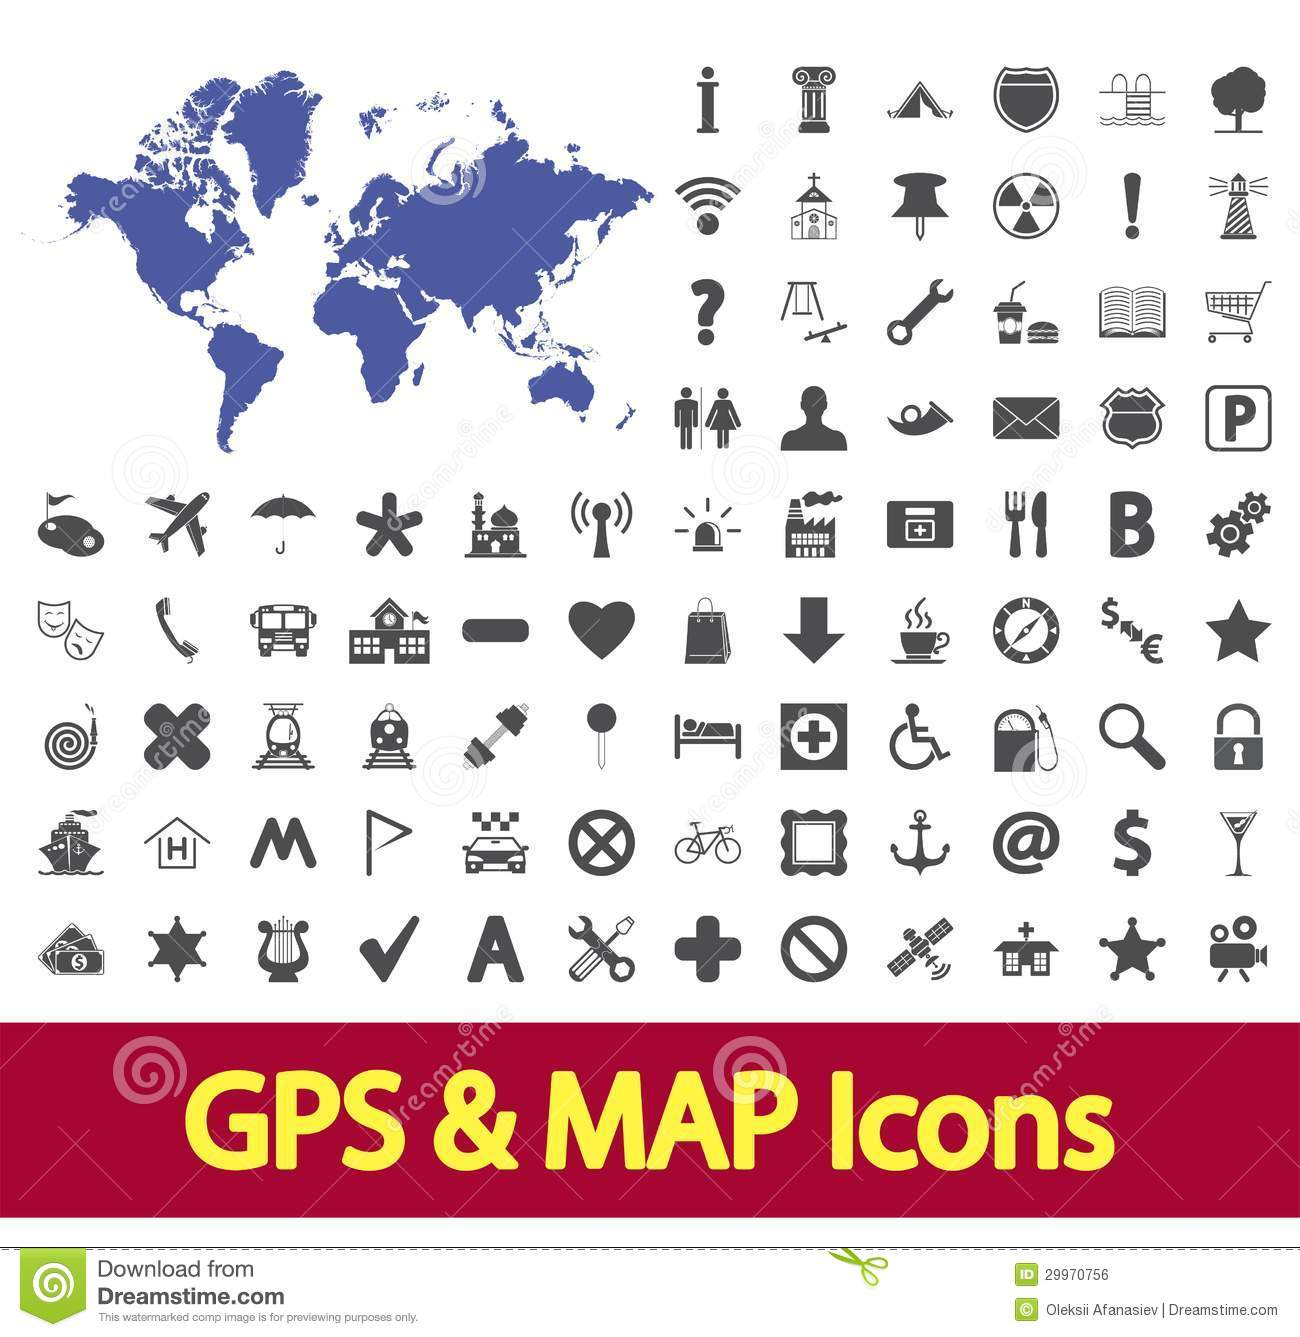 Navigation map icons. stock vector. Illustration of flag ... on user experience map, using compass and map, reference map, prime meridian map, charting map, sonar map, social location map, tv map, person with map, law of the sea map, gps map, digital map, word bubble map, navigon europe map, atlantis expedition map, messaging map, navigable waters map, navigate map, application interface map, old galveston map,